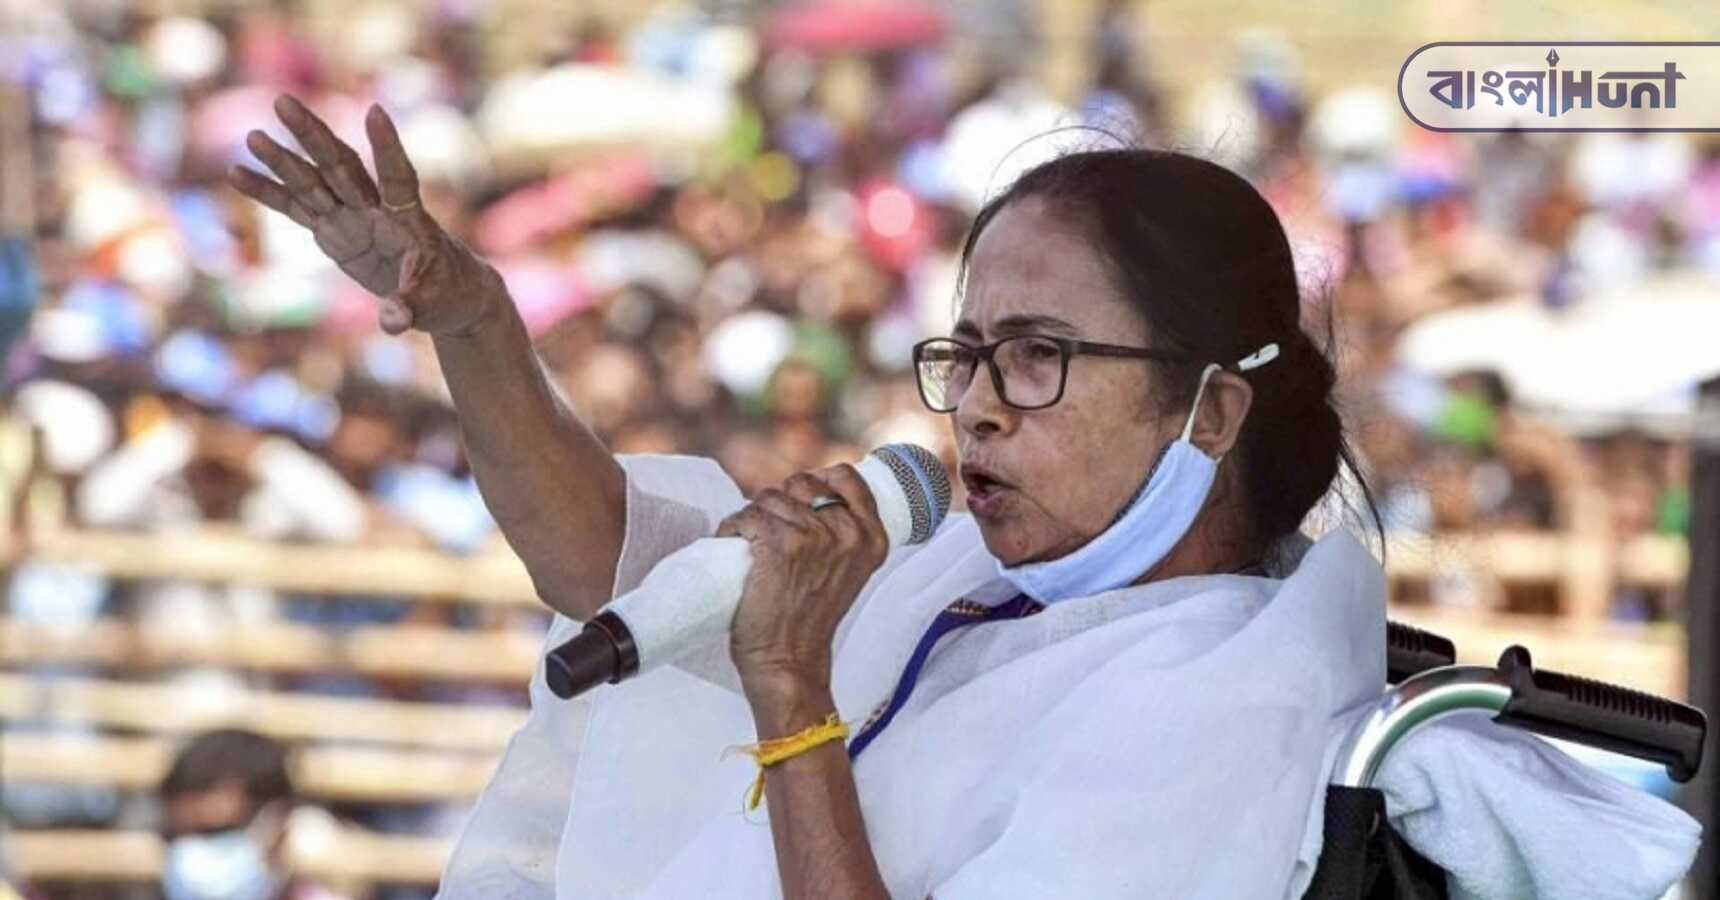 mamata banerjee invited to leave leaders